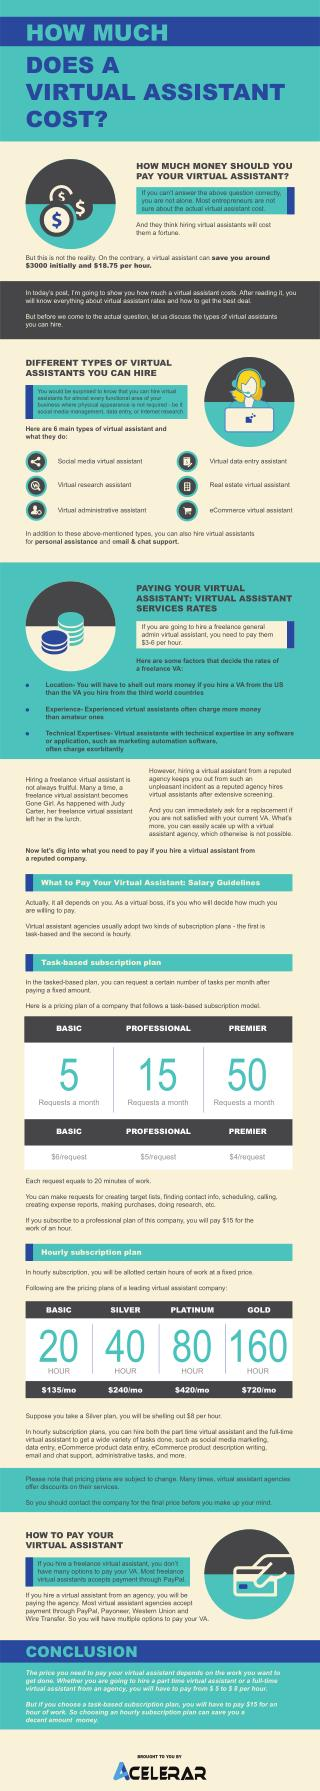 How Much Does a Virtual Assistant Cost?